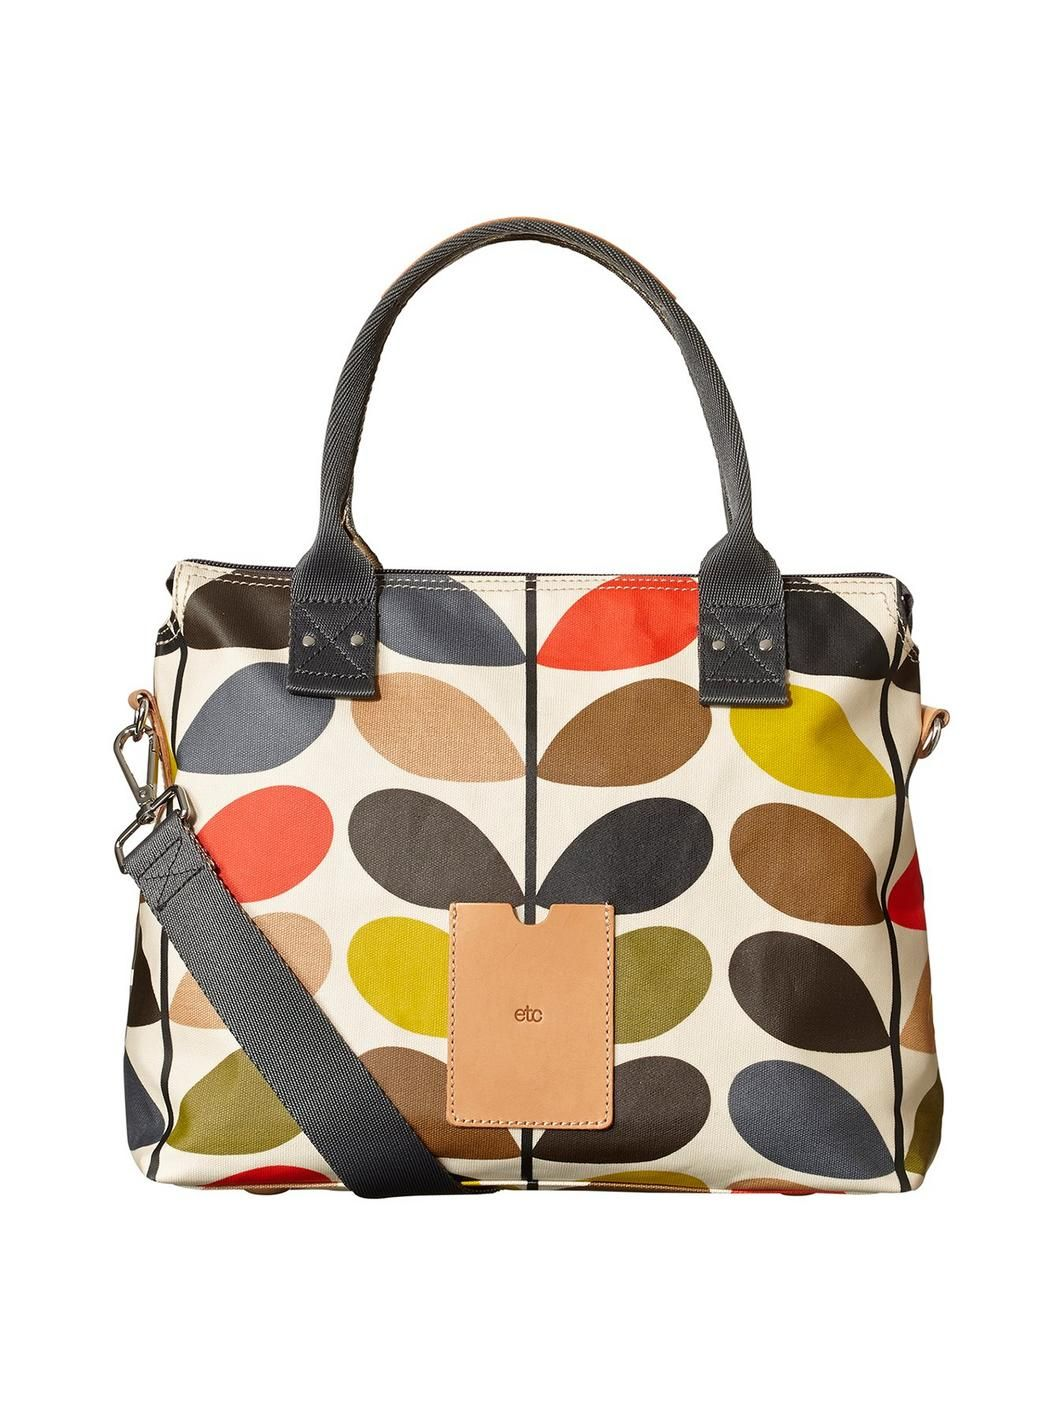 cbff093cd Official Orla Kiely online store with a huge range of our iconic Bags,  Clothing, Accessories and Home.